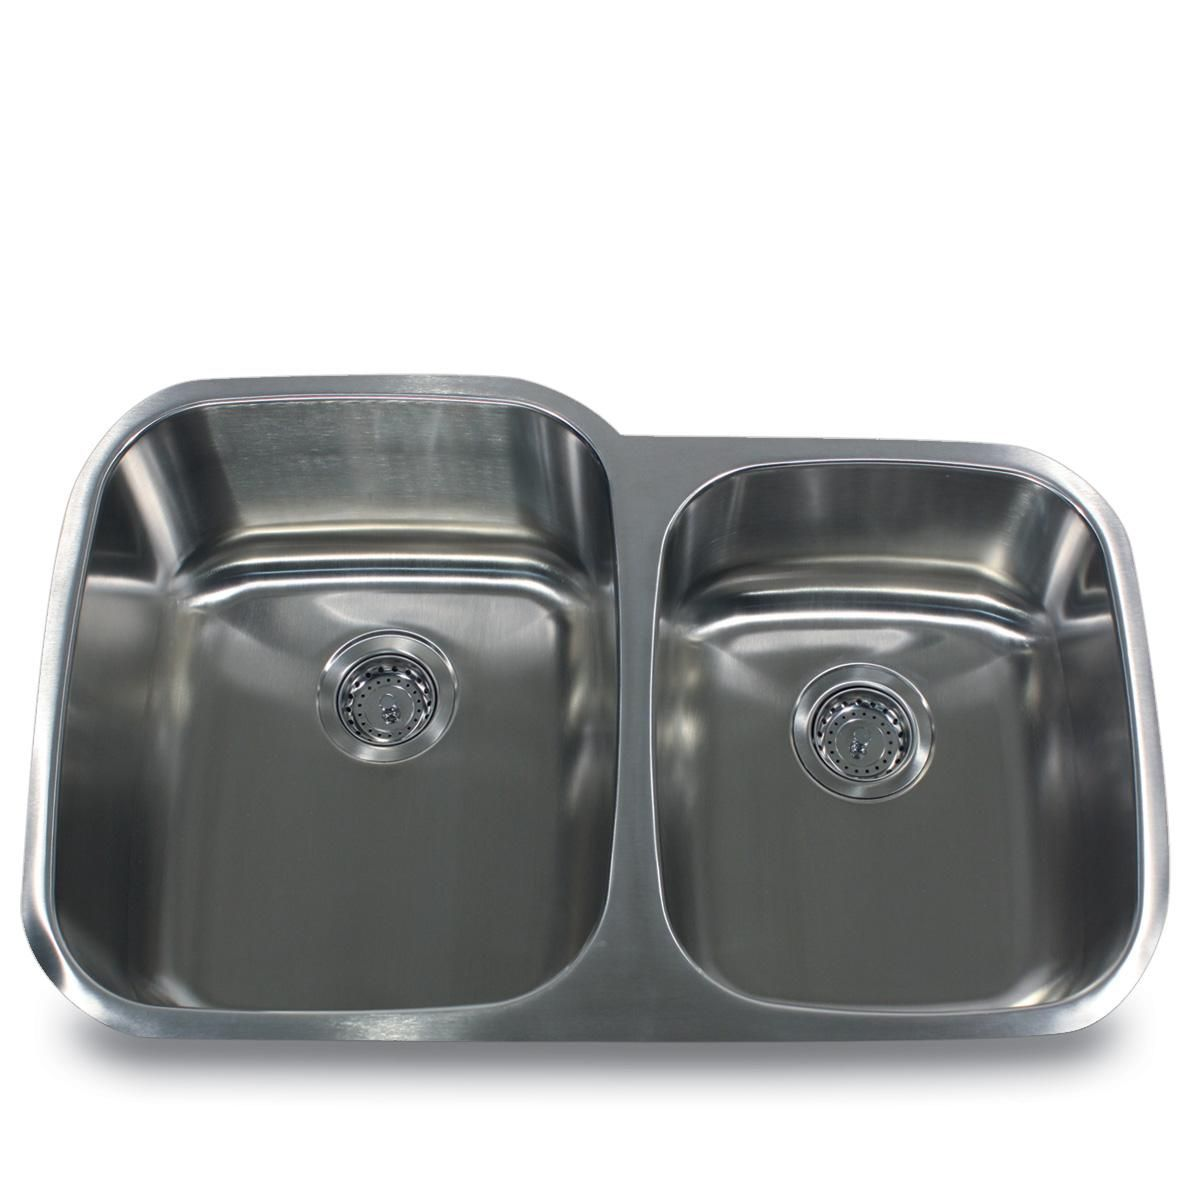 Stainless Steel (Silver) Offset Double Bowl Kitchen Sink (Stainless Steel Double Bowl)